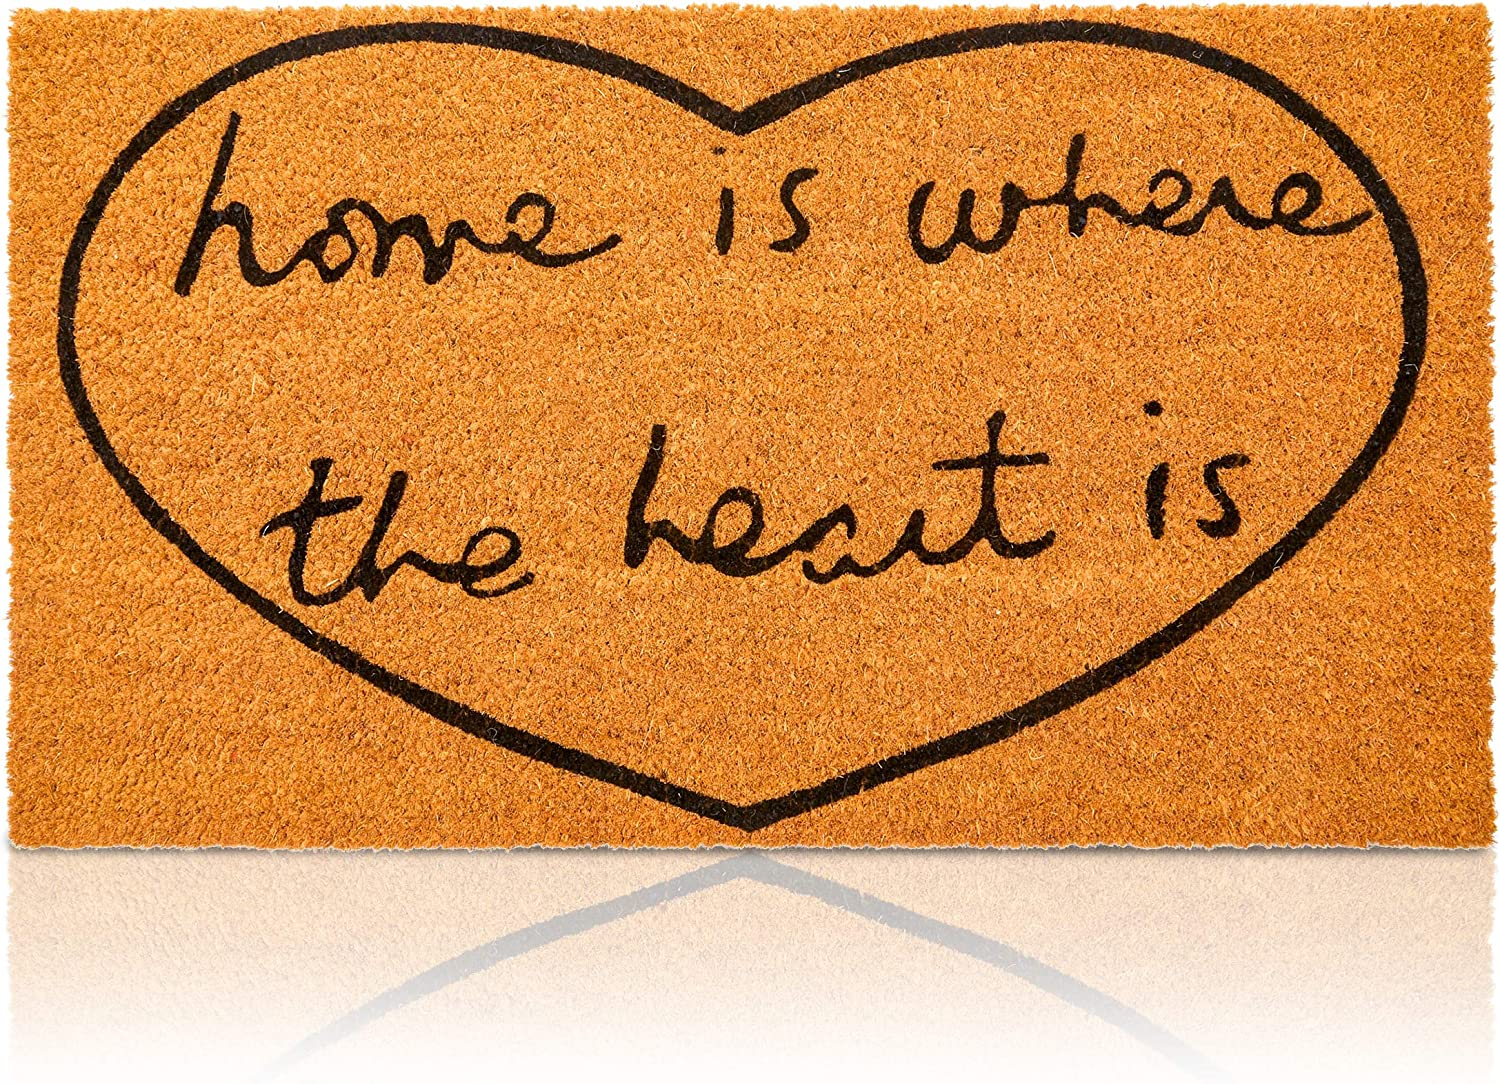 Heart Doormat, Home is Where The Heart is Mat (17 x 30 in., Natural Coir)